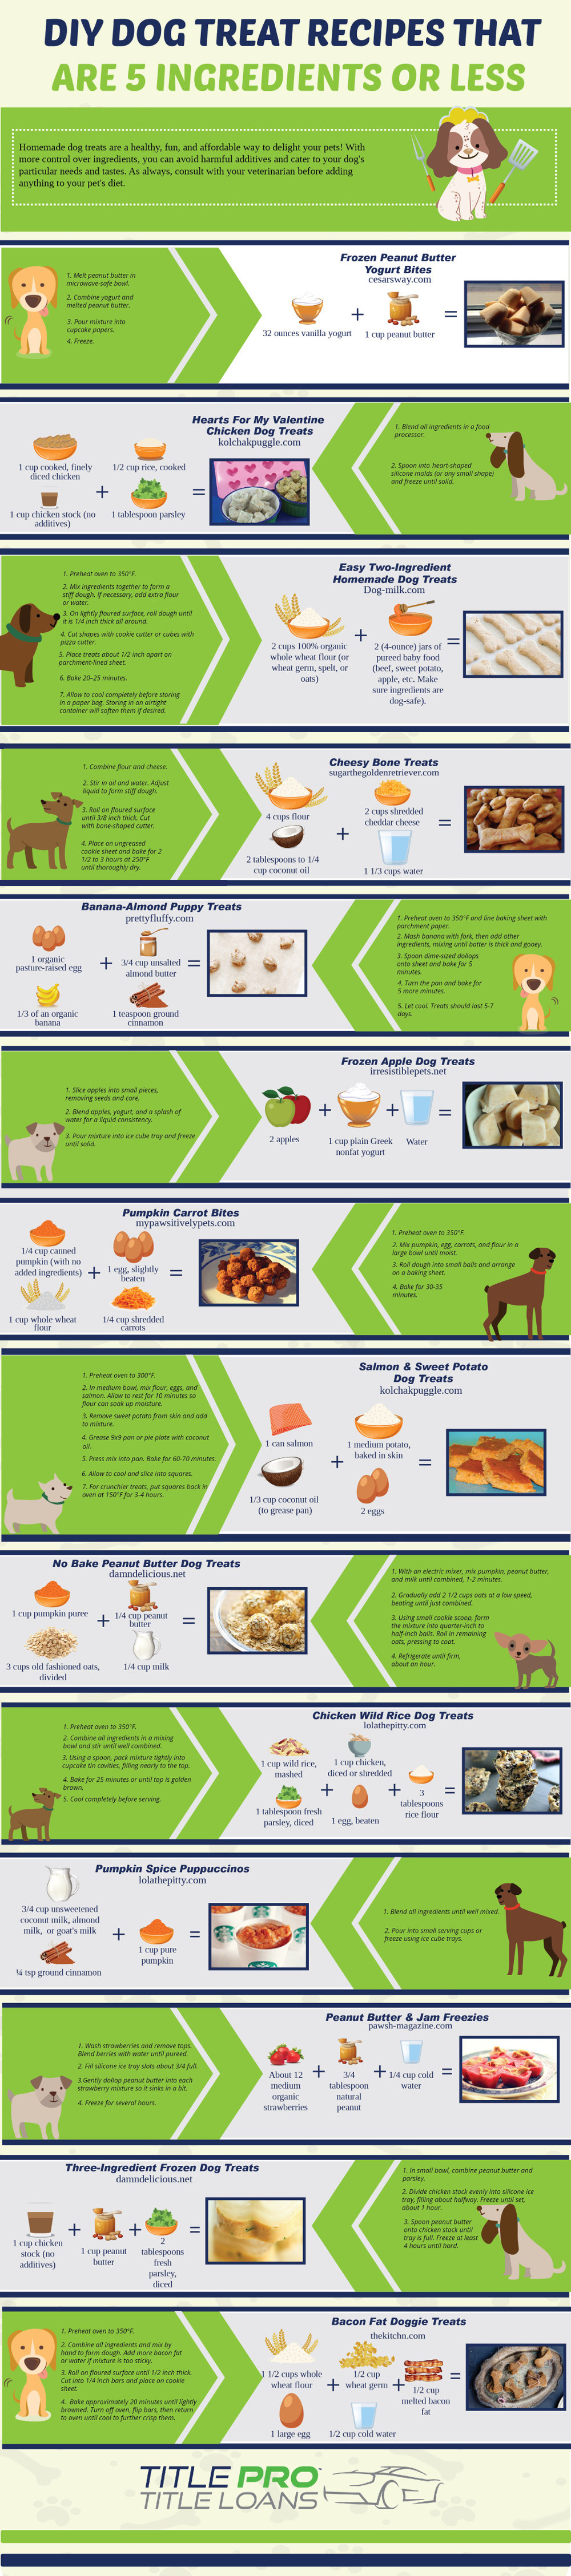 Homemade Dog Treat Recipes: Healthy, Delicious and Very Affordable! - Infographic